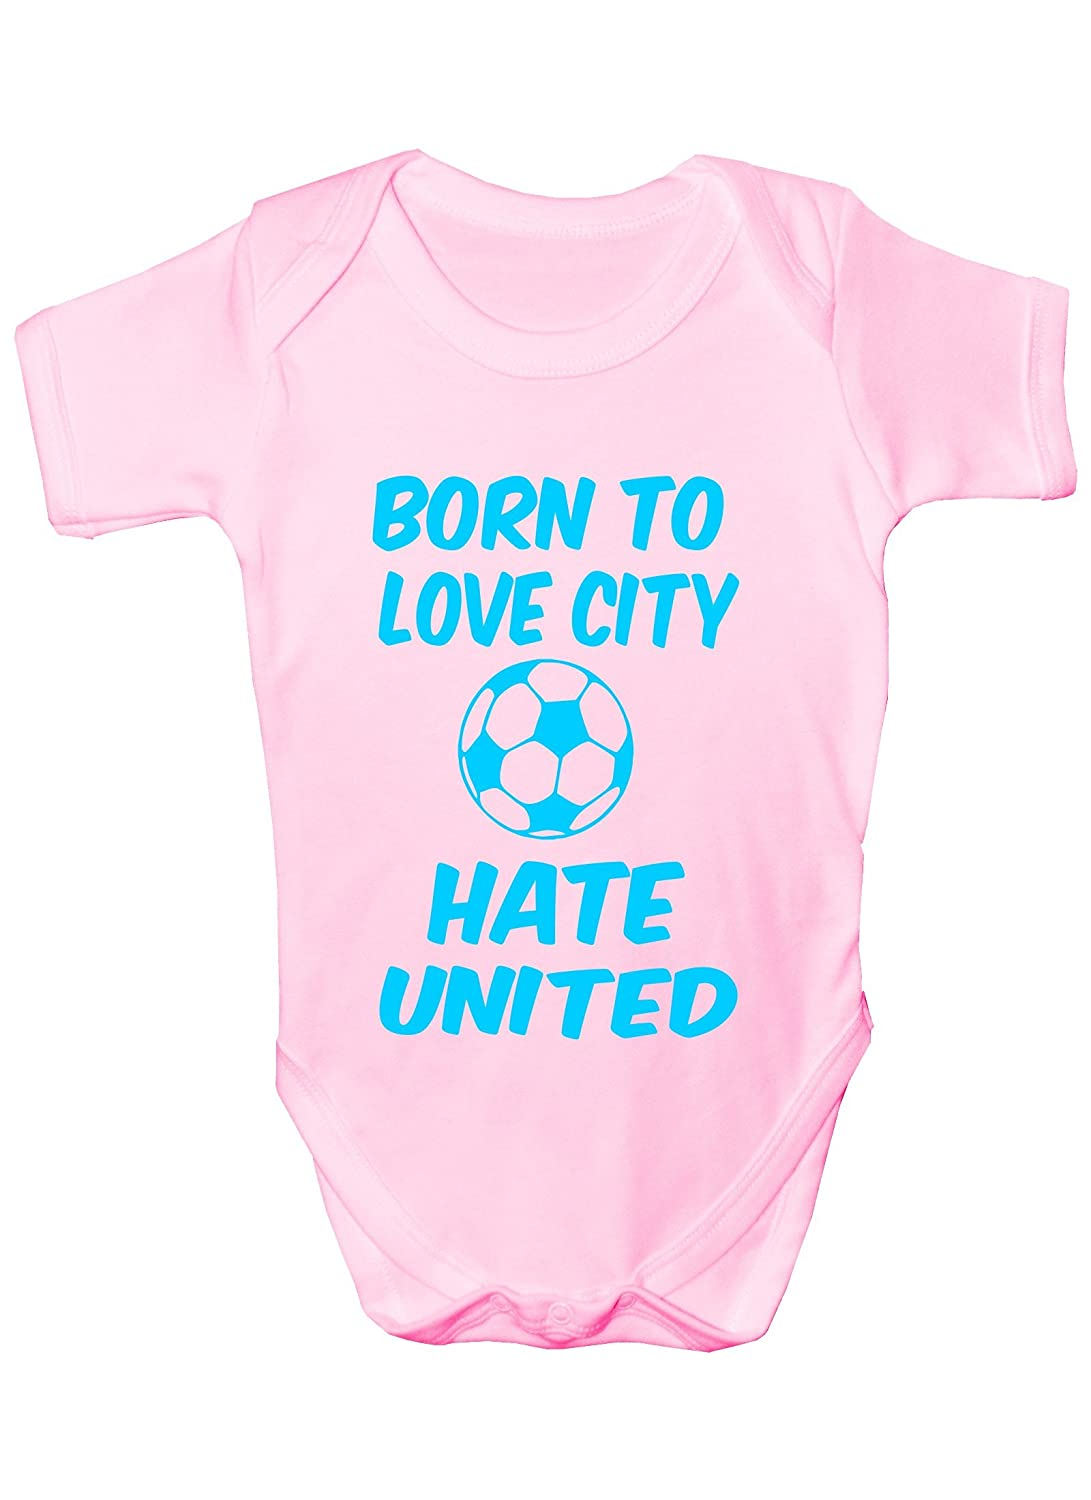 Love Man United Hate Man City Football Babygrow Vest Gift Boy Girl Baby Clothing